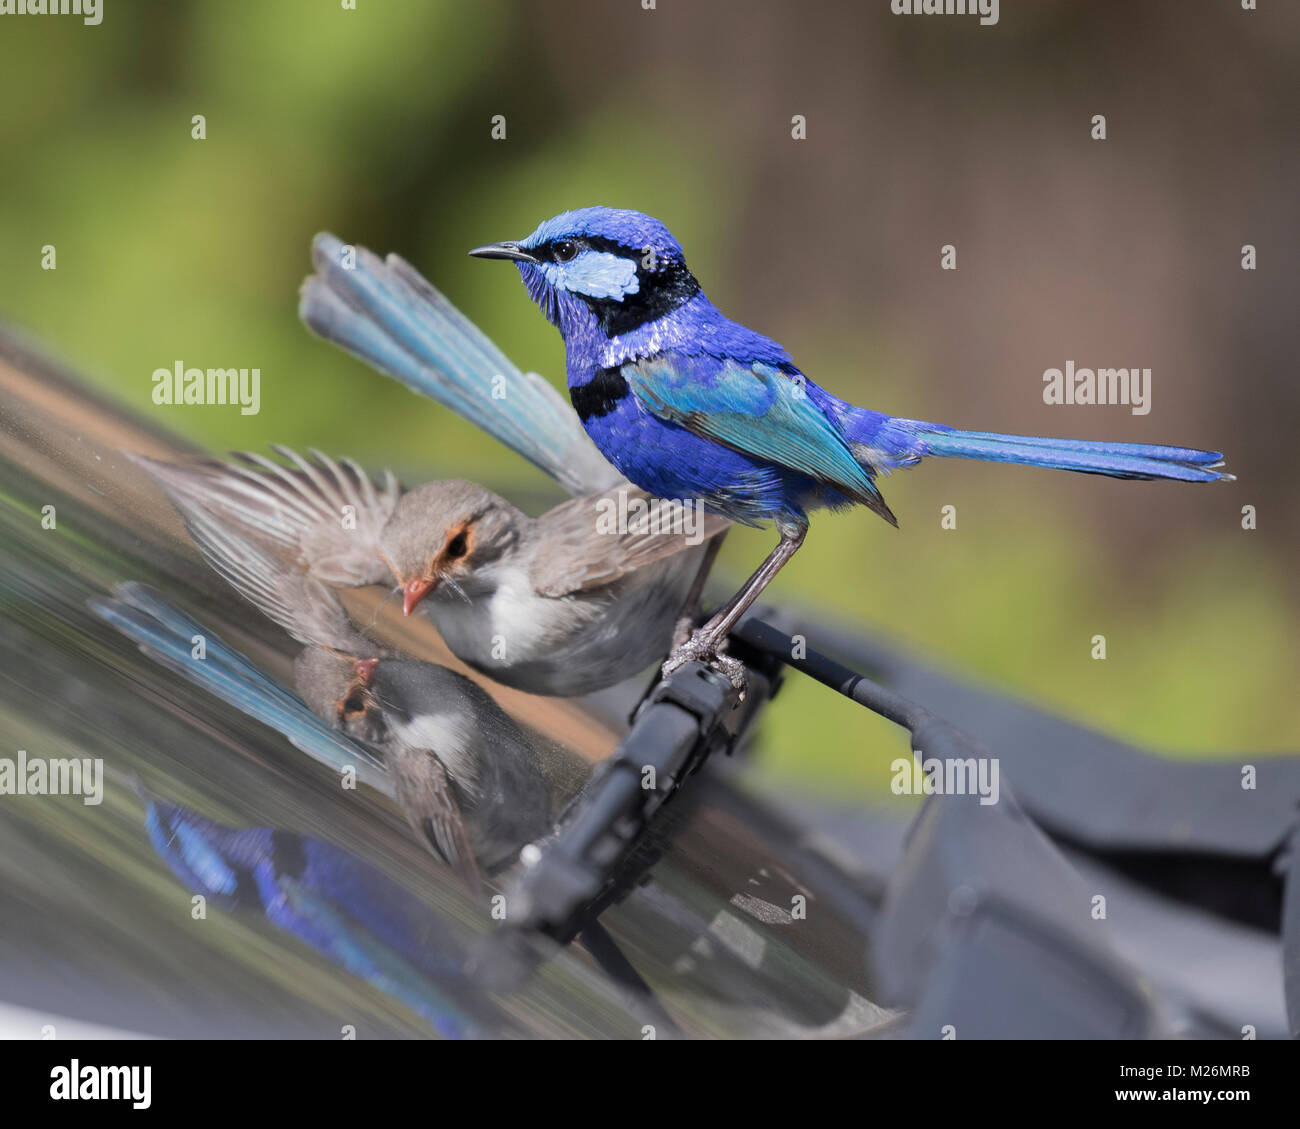 A female Splendid Fairy-wren (Malurus splendens) attacks its reflection in a car windscreen whilst a male watches - Stock Image